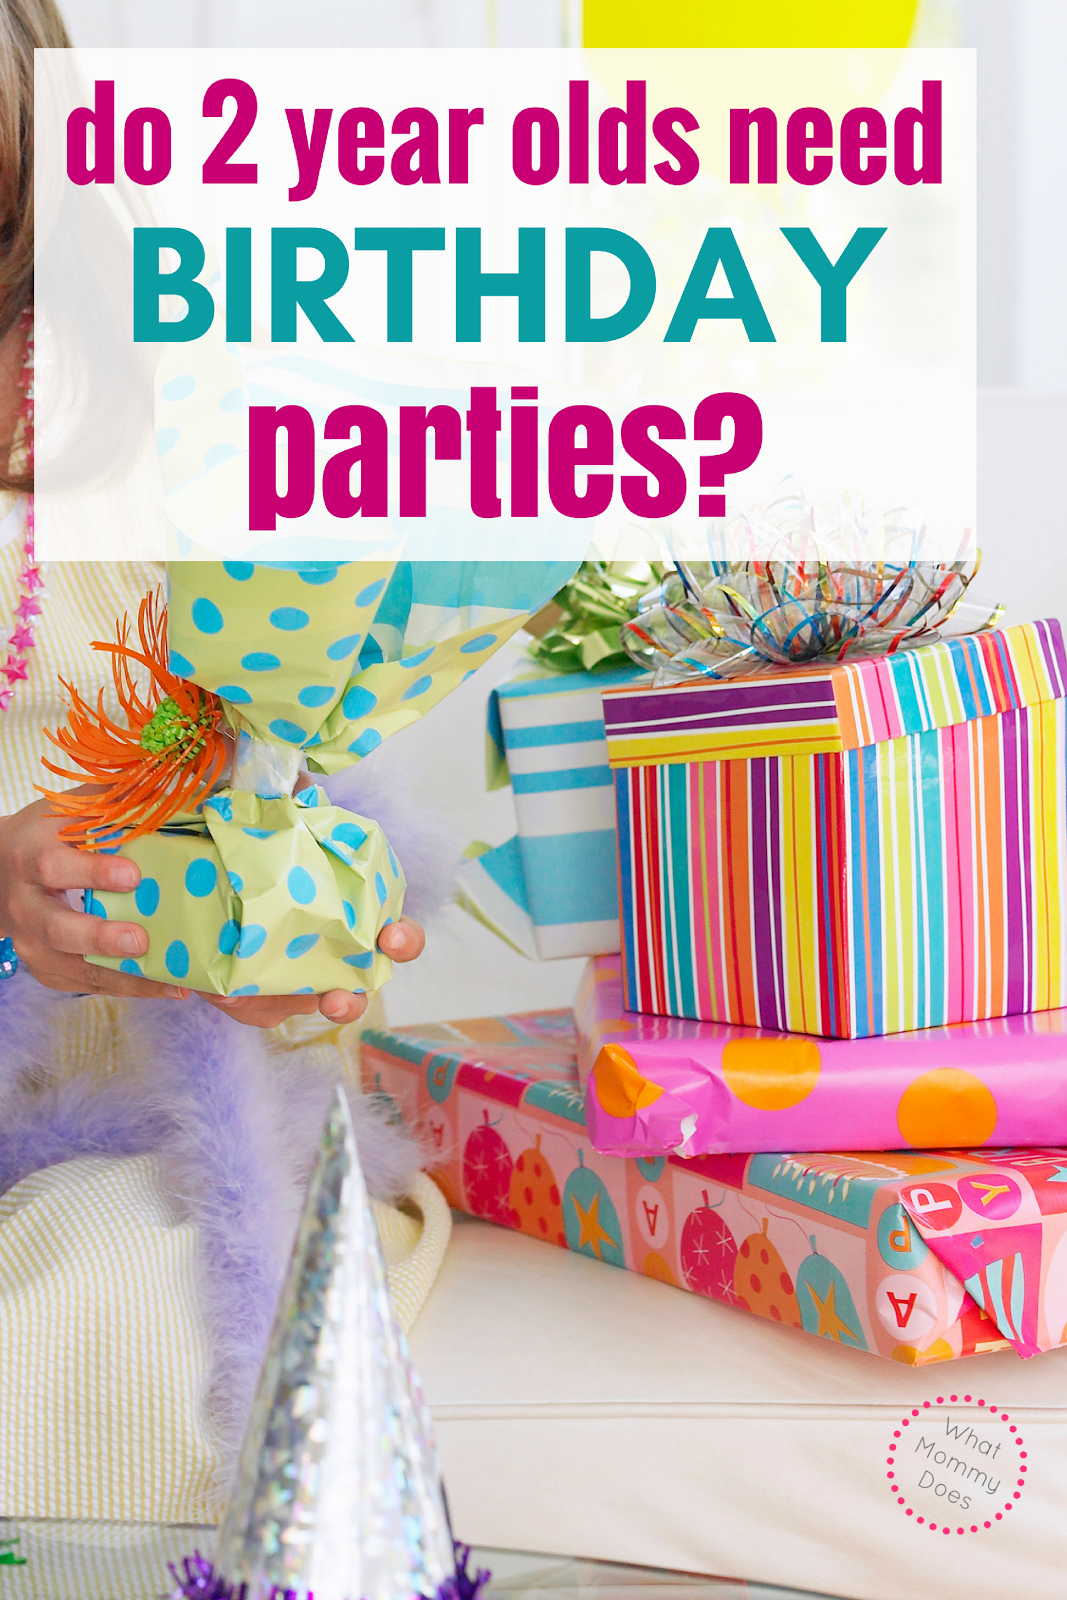 Should parents throw birthday parties for two year olds? It may be a little controversial but here are some ideas for your kids birthday parties.